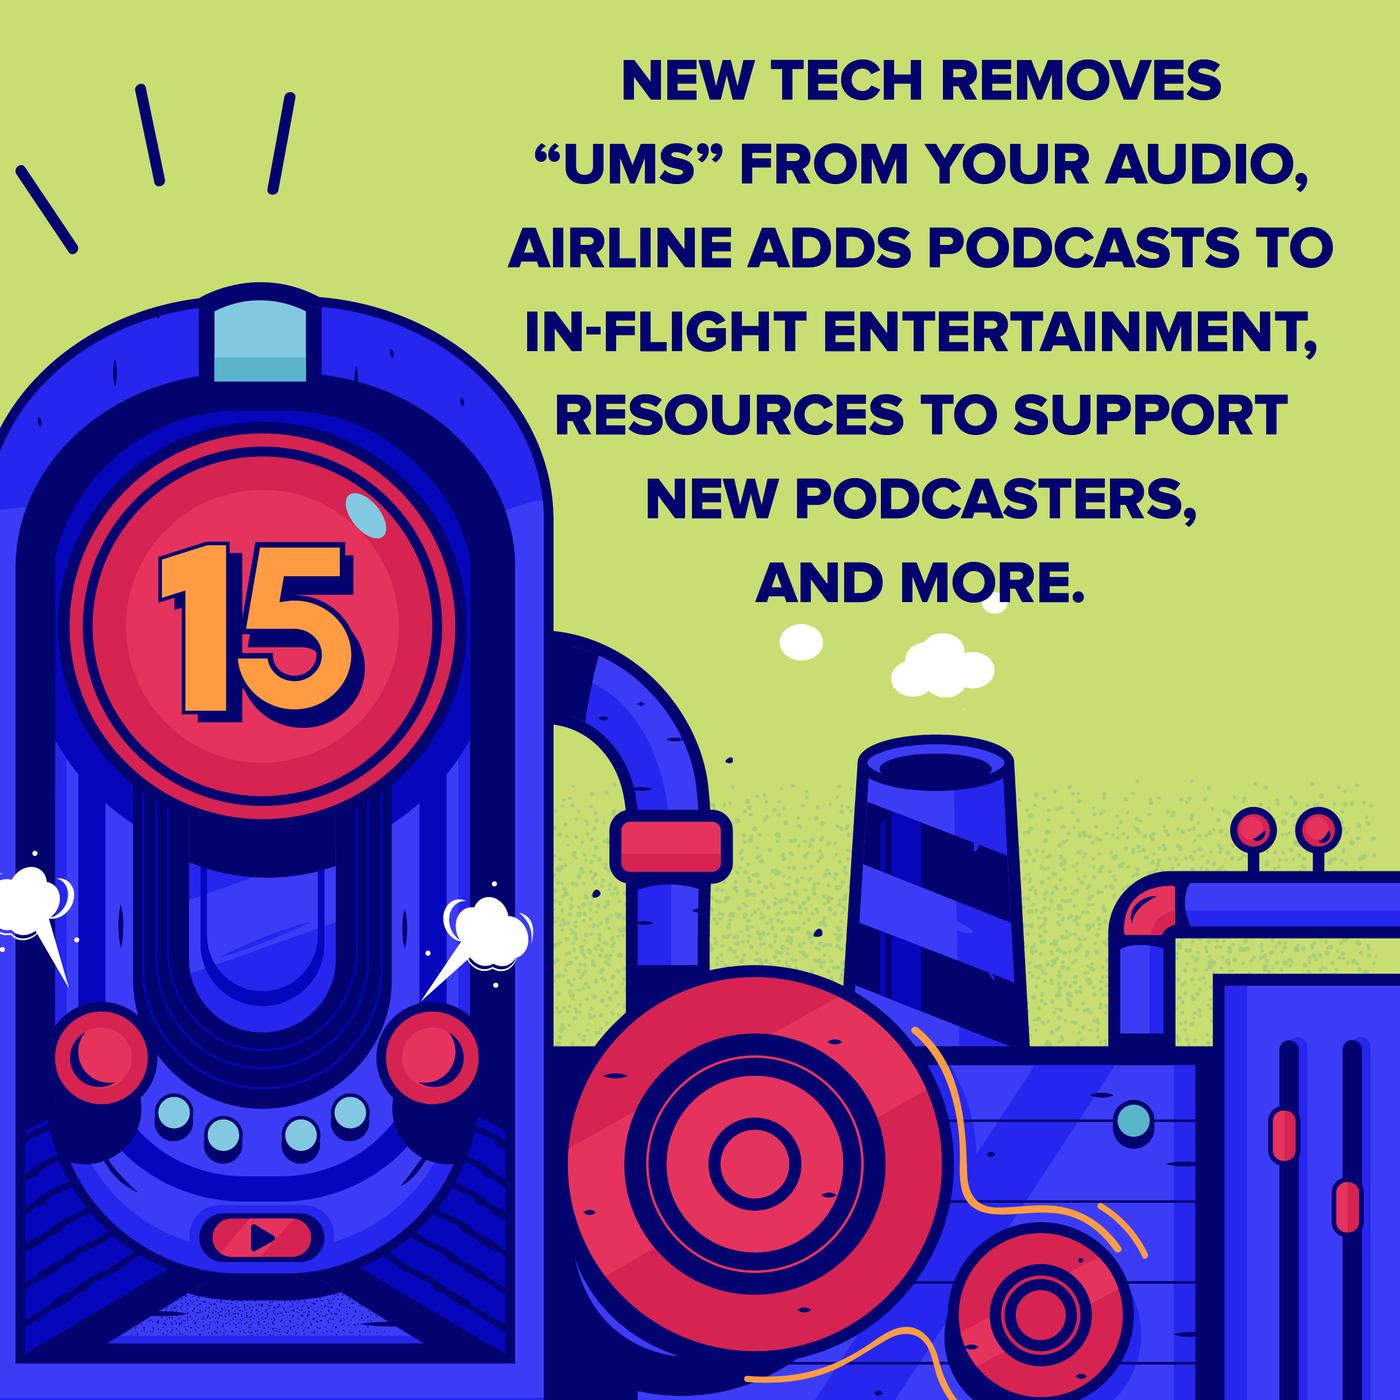 """New Tech Removes """"Ums"""" From Your Audio, Airline Adds Podcasts To In-Flight Entertainment, Resources to Support New Podcasters, and More."""